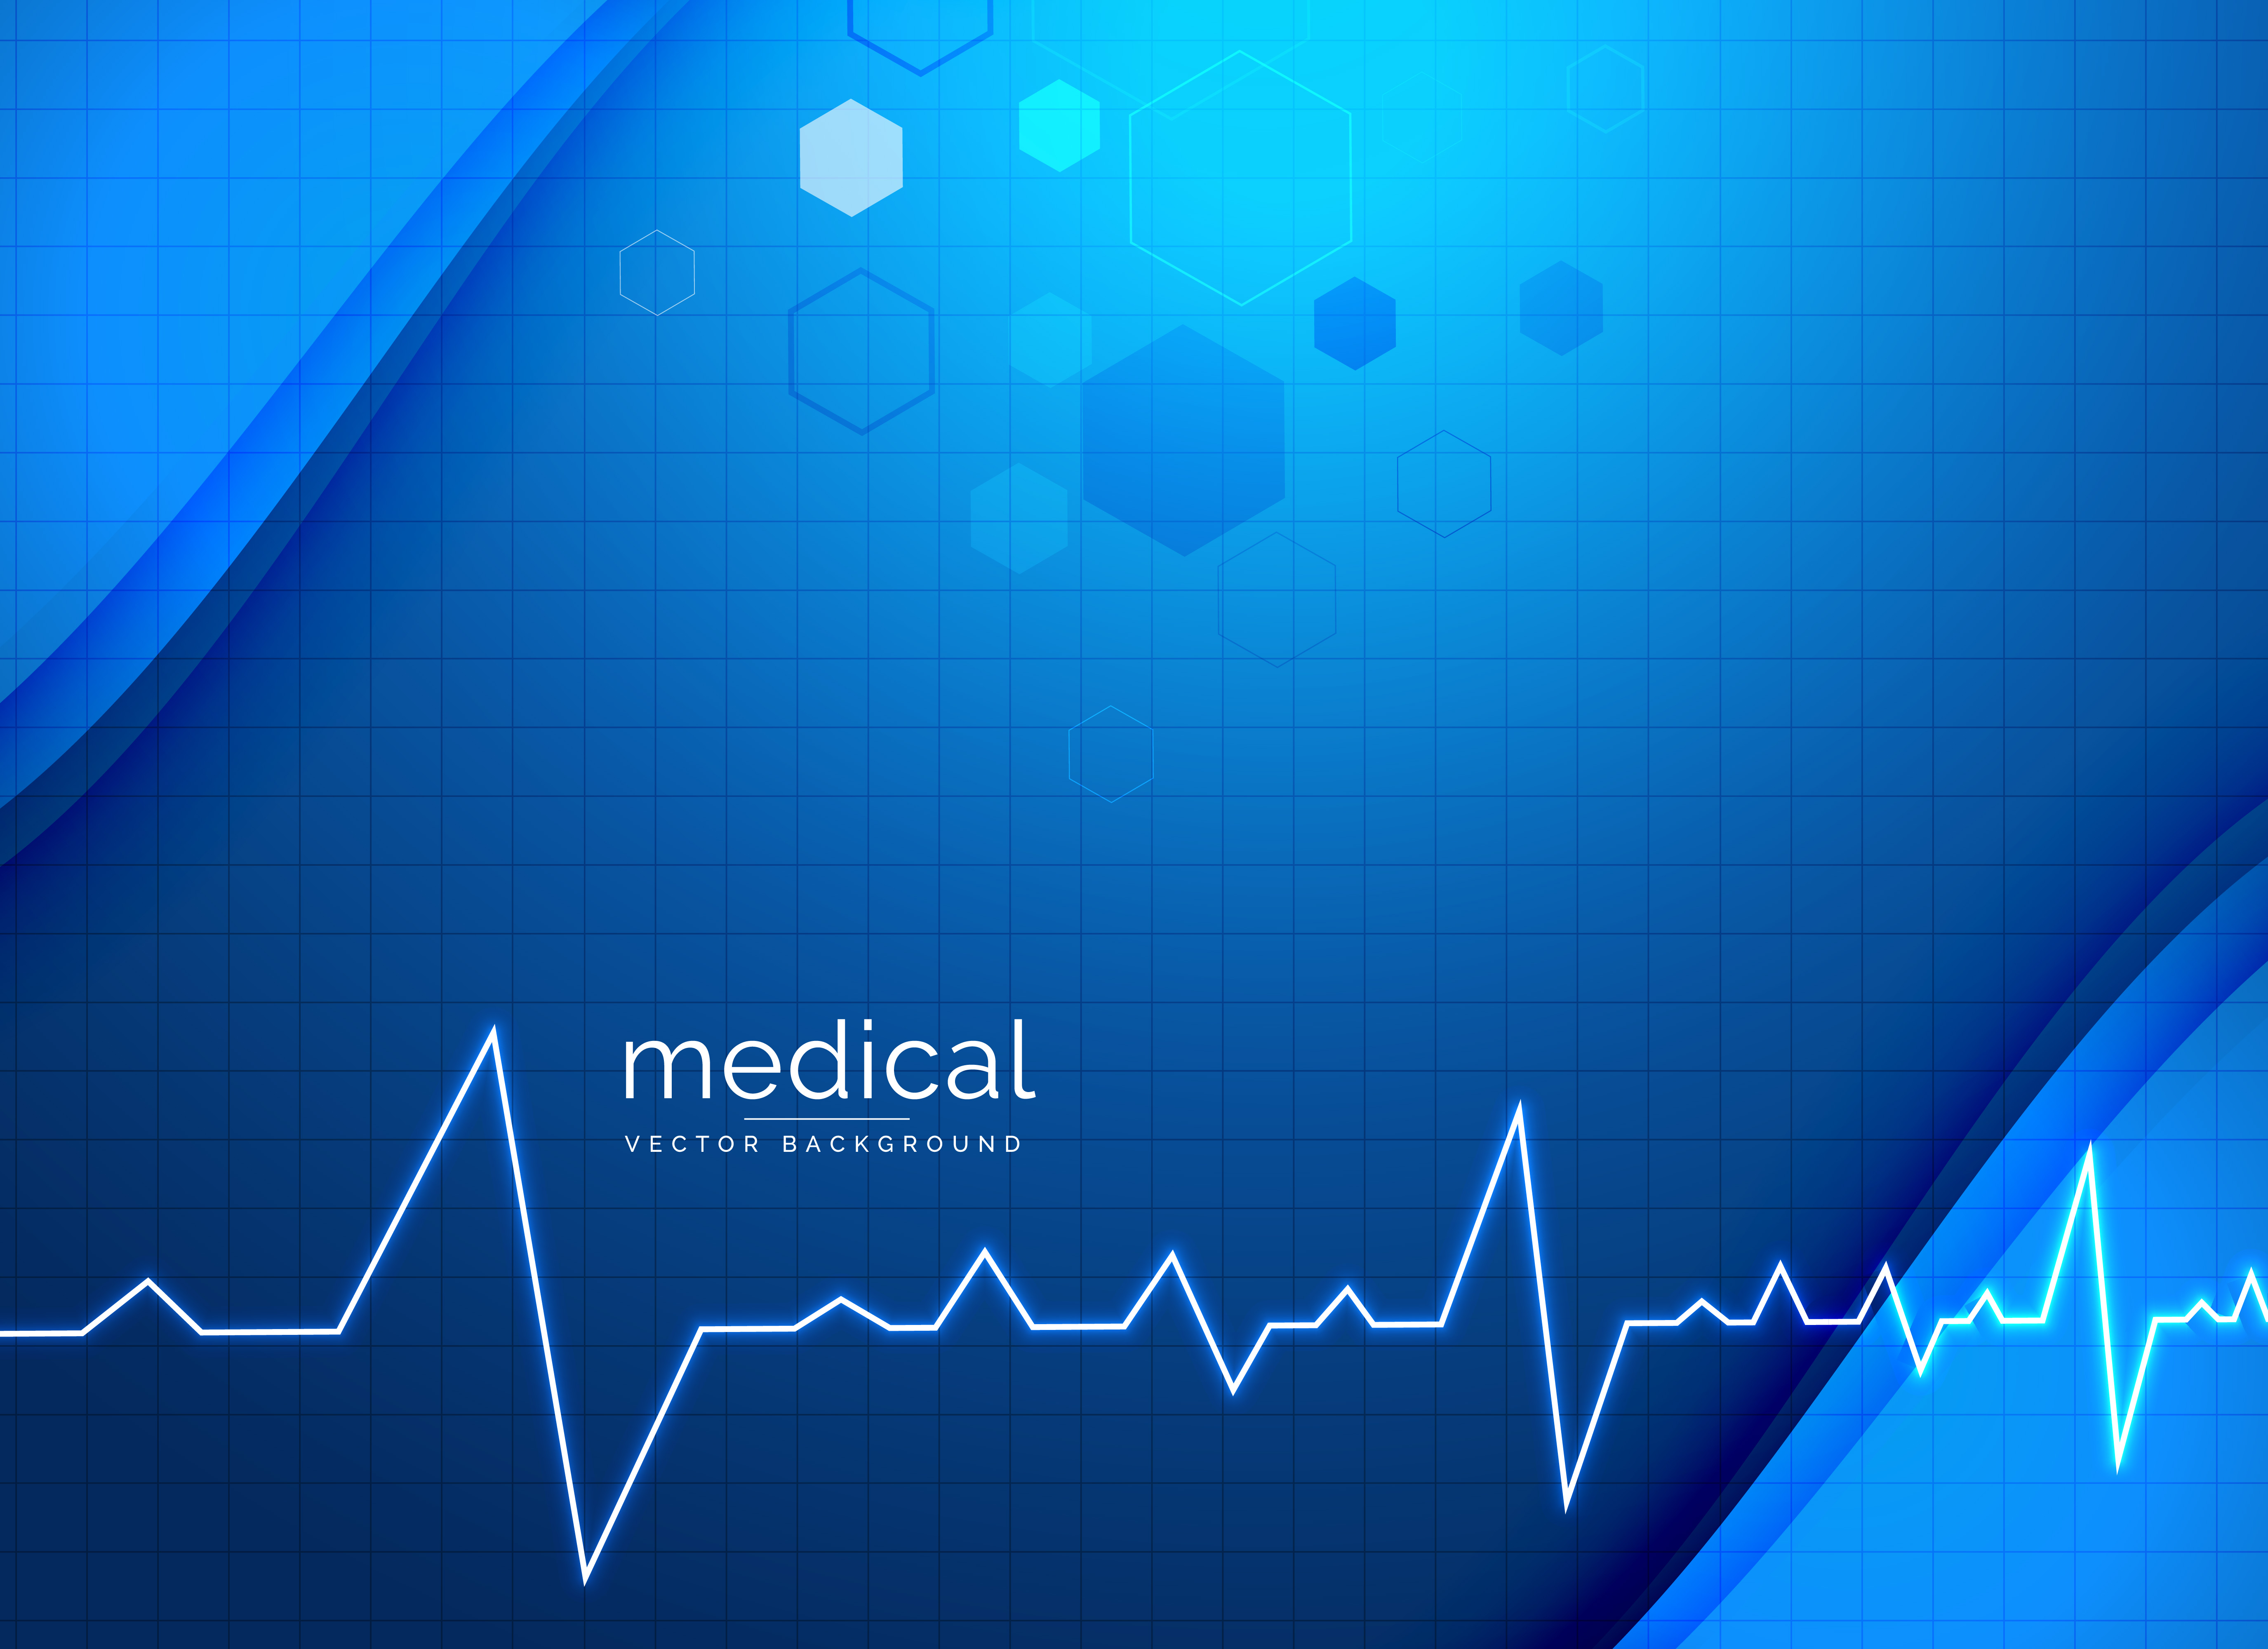 healthcare-medical-background-with-electrocardiogram-vector.jpg